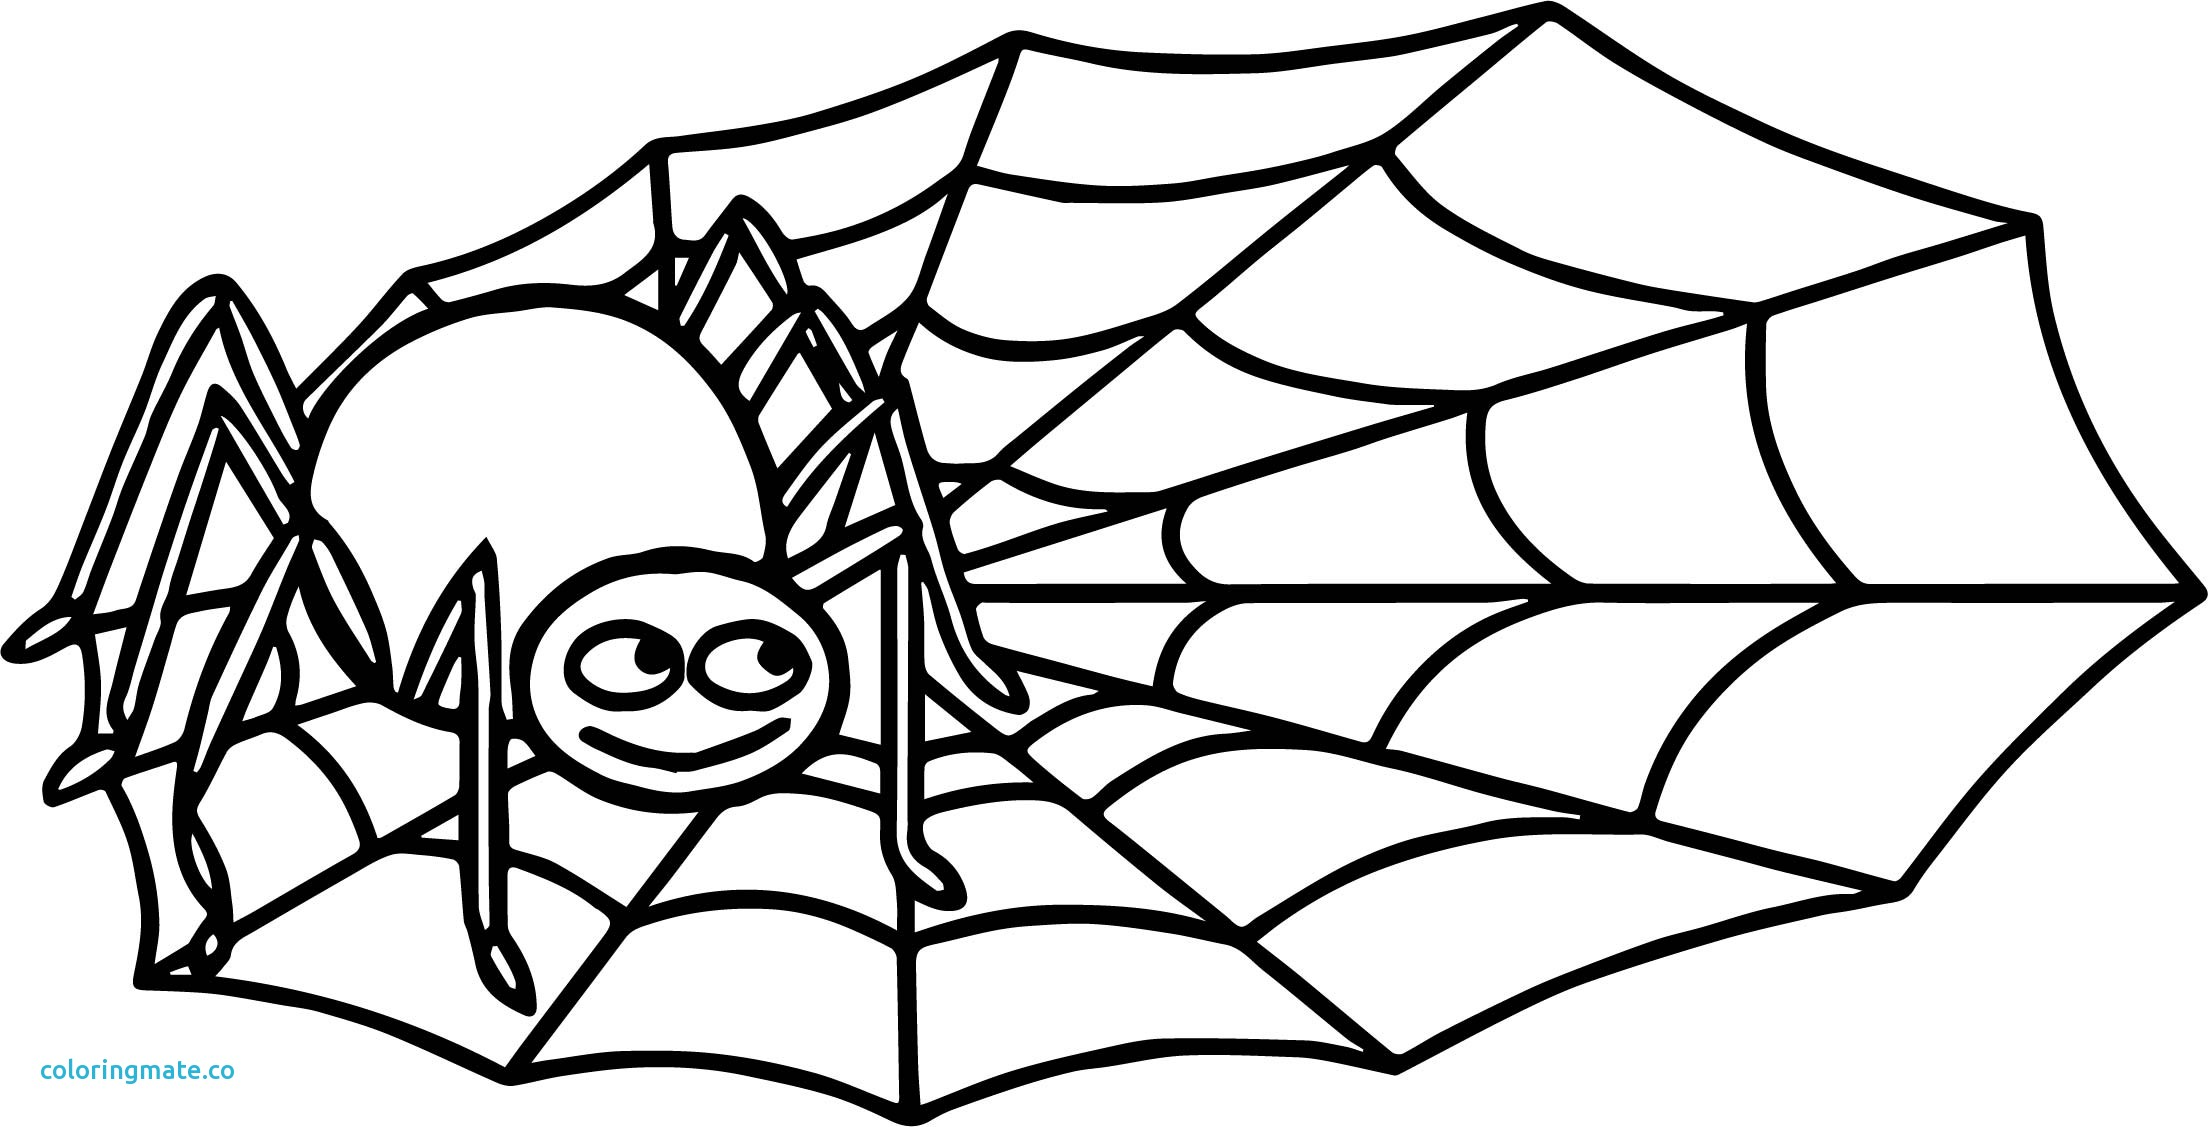 2208x1127 Spider Web Coloring Page Lovely Halloween Cute Play Free Online